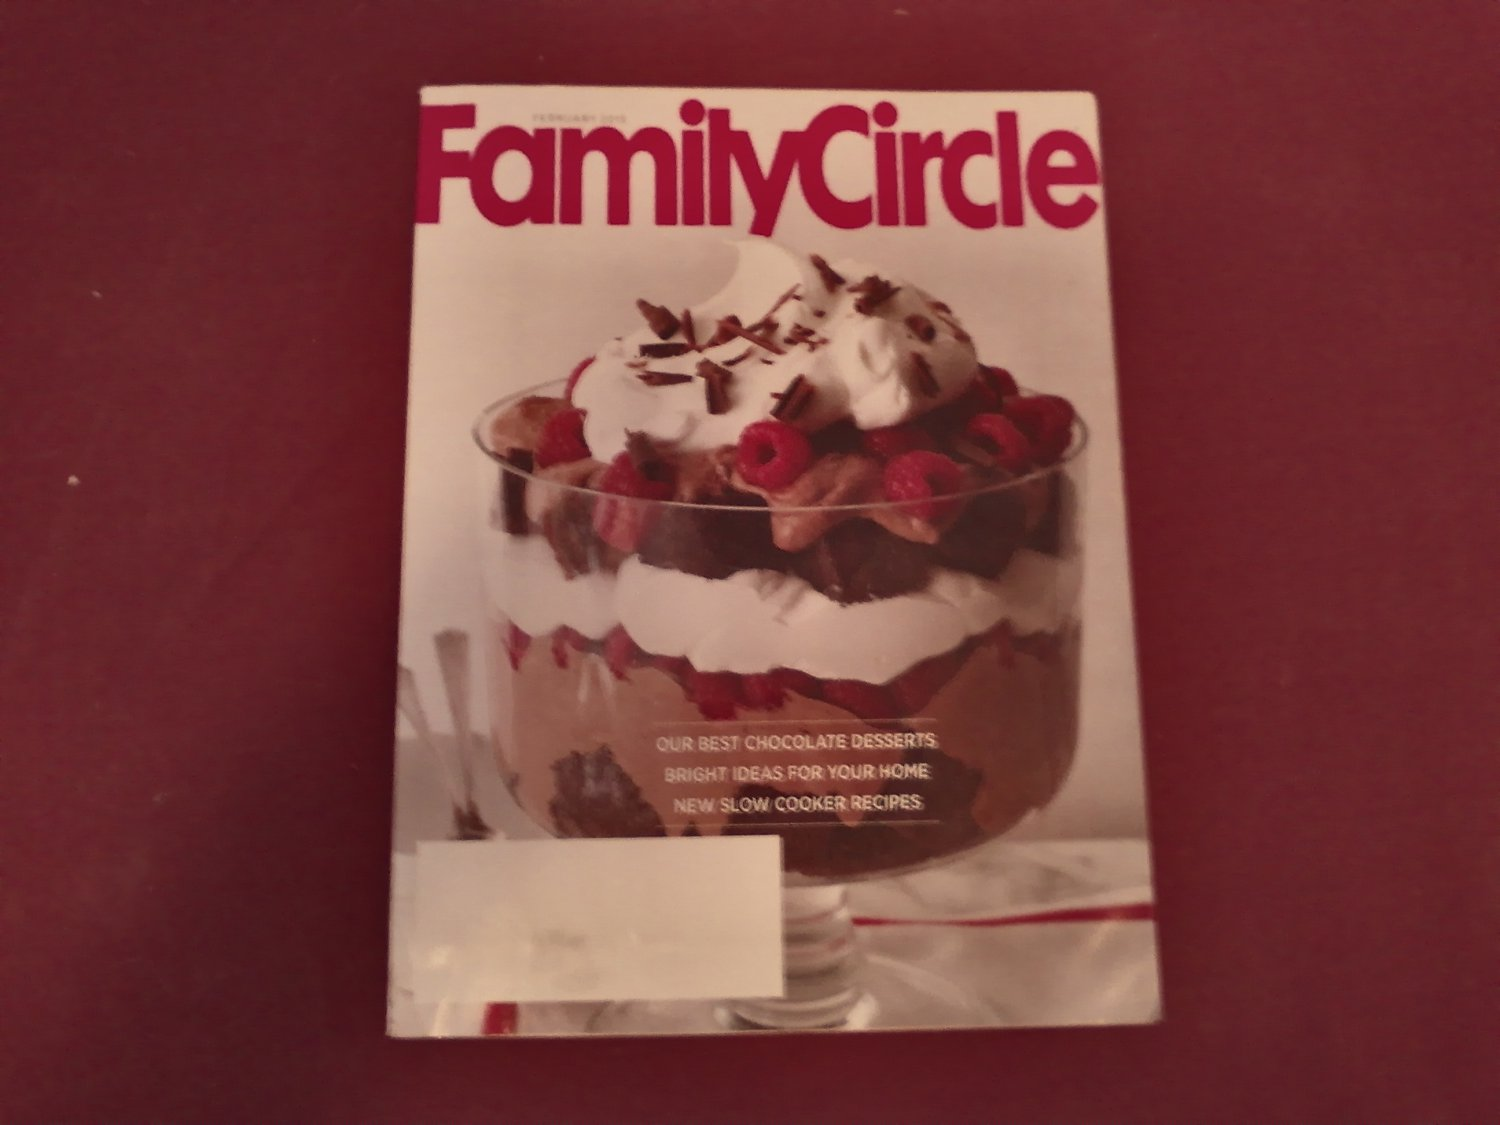 Family Circle Magazine February 2015 Volume 128 Number 2 - Chocolate Desserts Slow Cooker (G1)